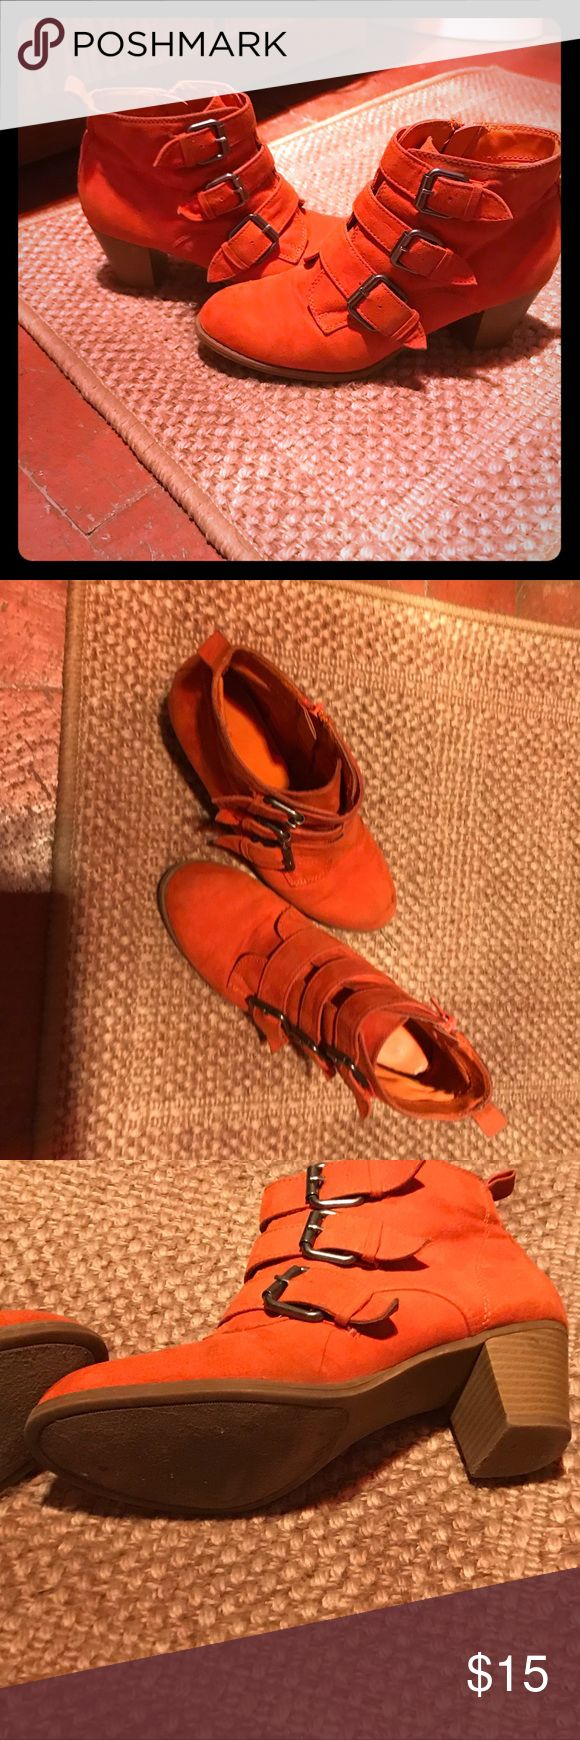 Size 7 1/2 orange vegan leather ankle booties Size 7.5 vegan leather burnt orange ankle booties with buckles. These are gently worn and in great condition. Shoes Ankle Boots & Booties